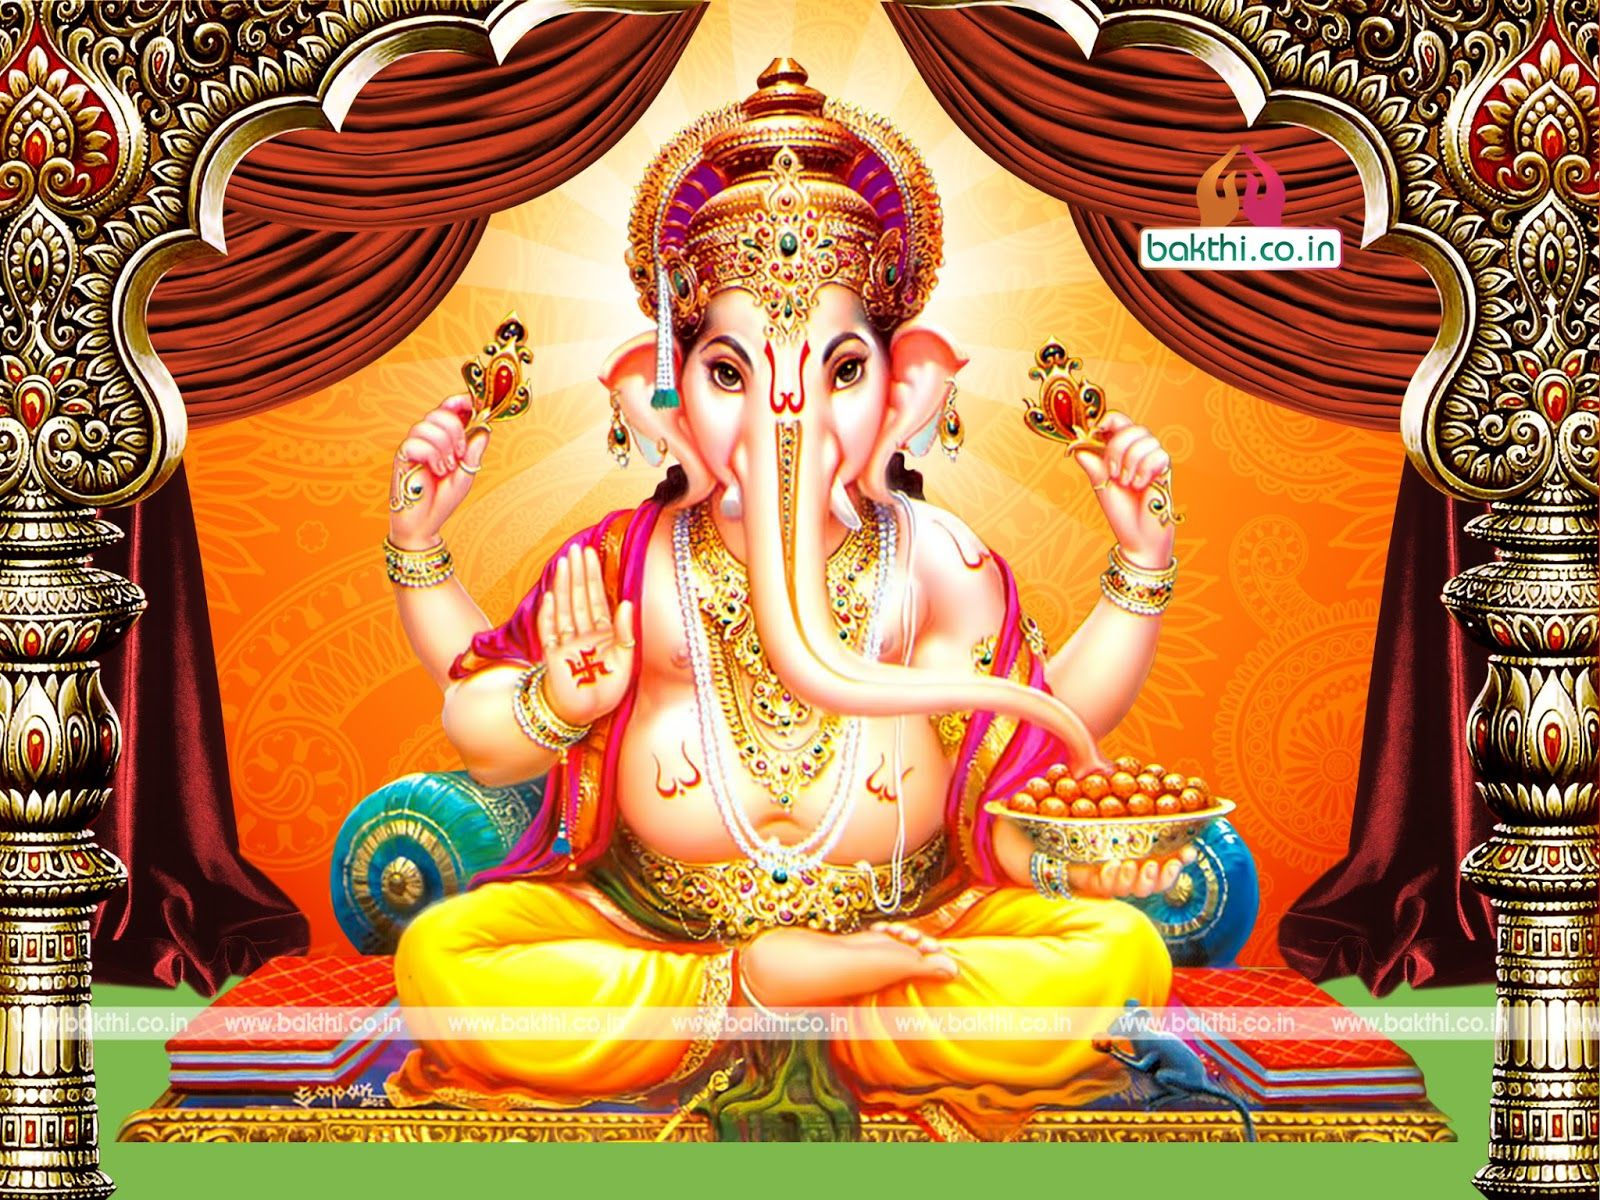 lord ganesha hd images bakthi co in devoitonal lord ganesha hd images bakthi co in devoitonal hindu